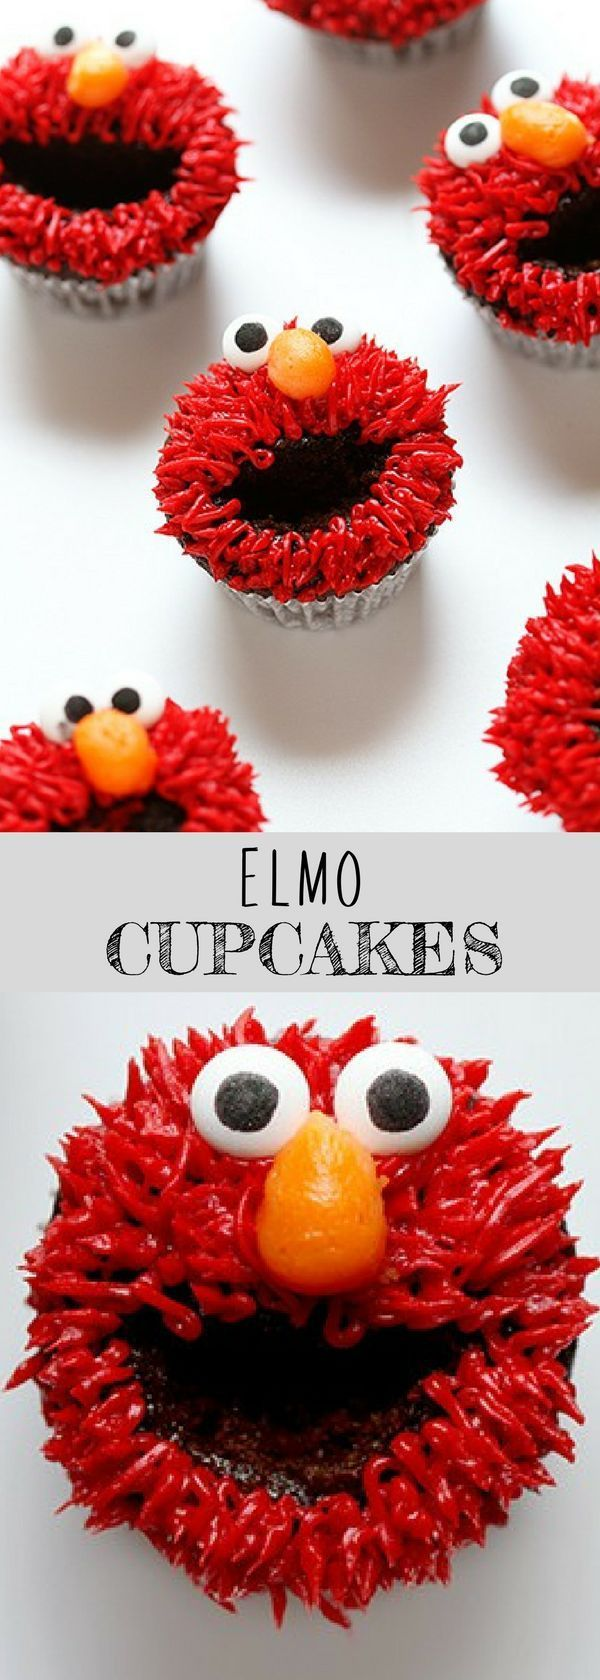 ELMO CUPCAKES | Get creative with delicious cupcake recipe- Elmo Cupcakes! All you need are some easy piping techniques, your favorite chocolate cake recipe and crusting buttercream recipe... For more simple and easy dessert recipes to make, check us out at #iambaker. #foodlover #desserts #yummydesserts #recipeoftheday #cupcakes #sweettooth #creative